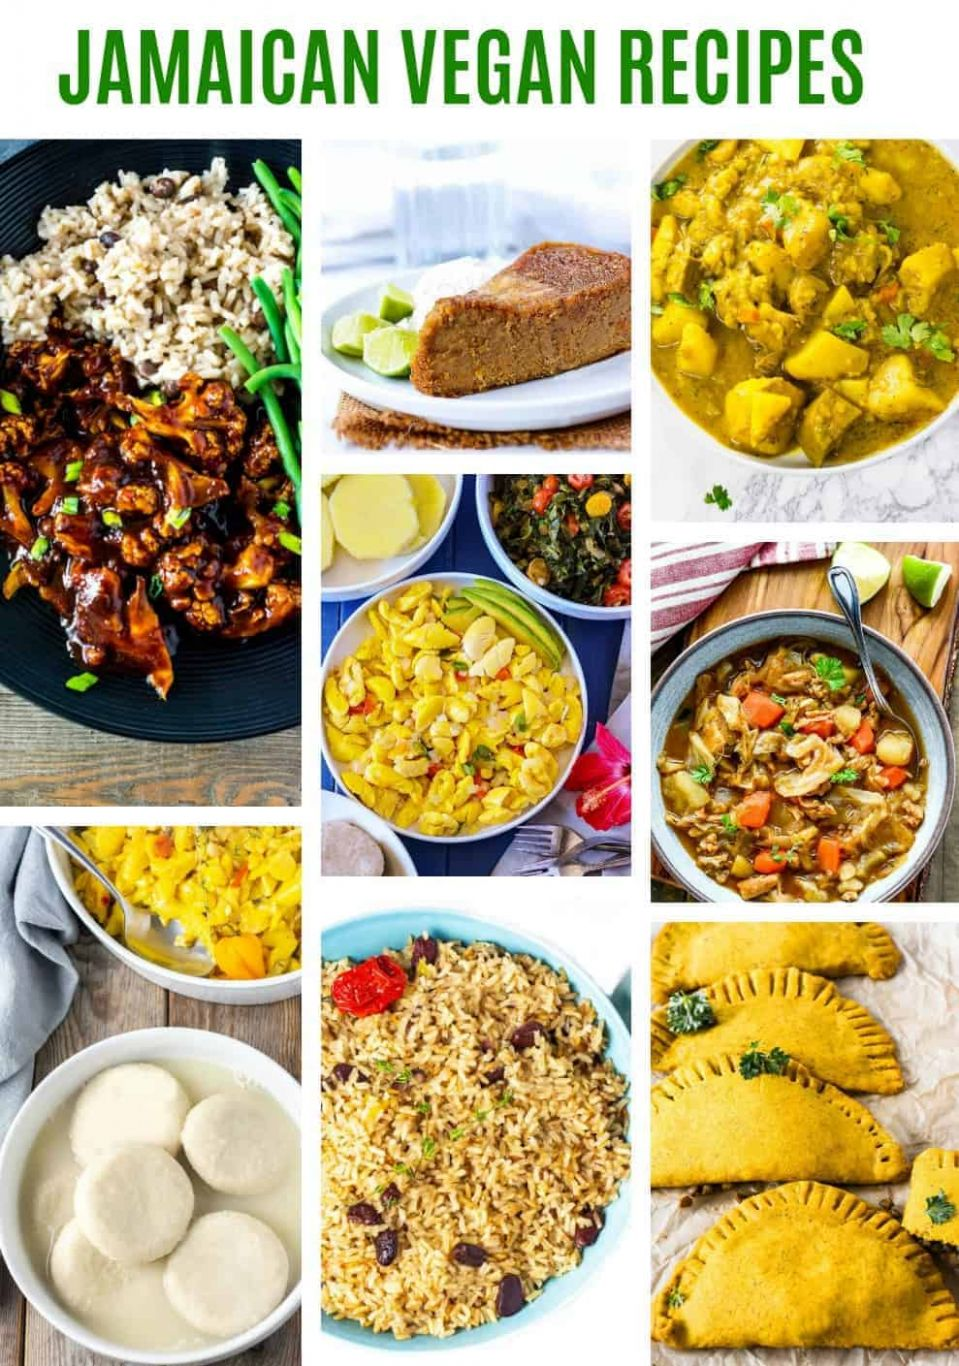 Jamaican Vegan Recipes - Healthier Steps - Simple Jamaican Recipes